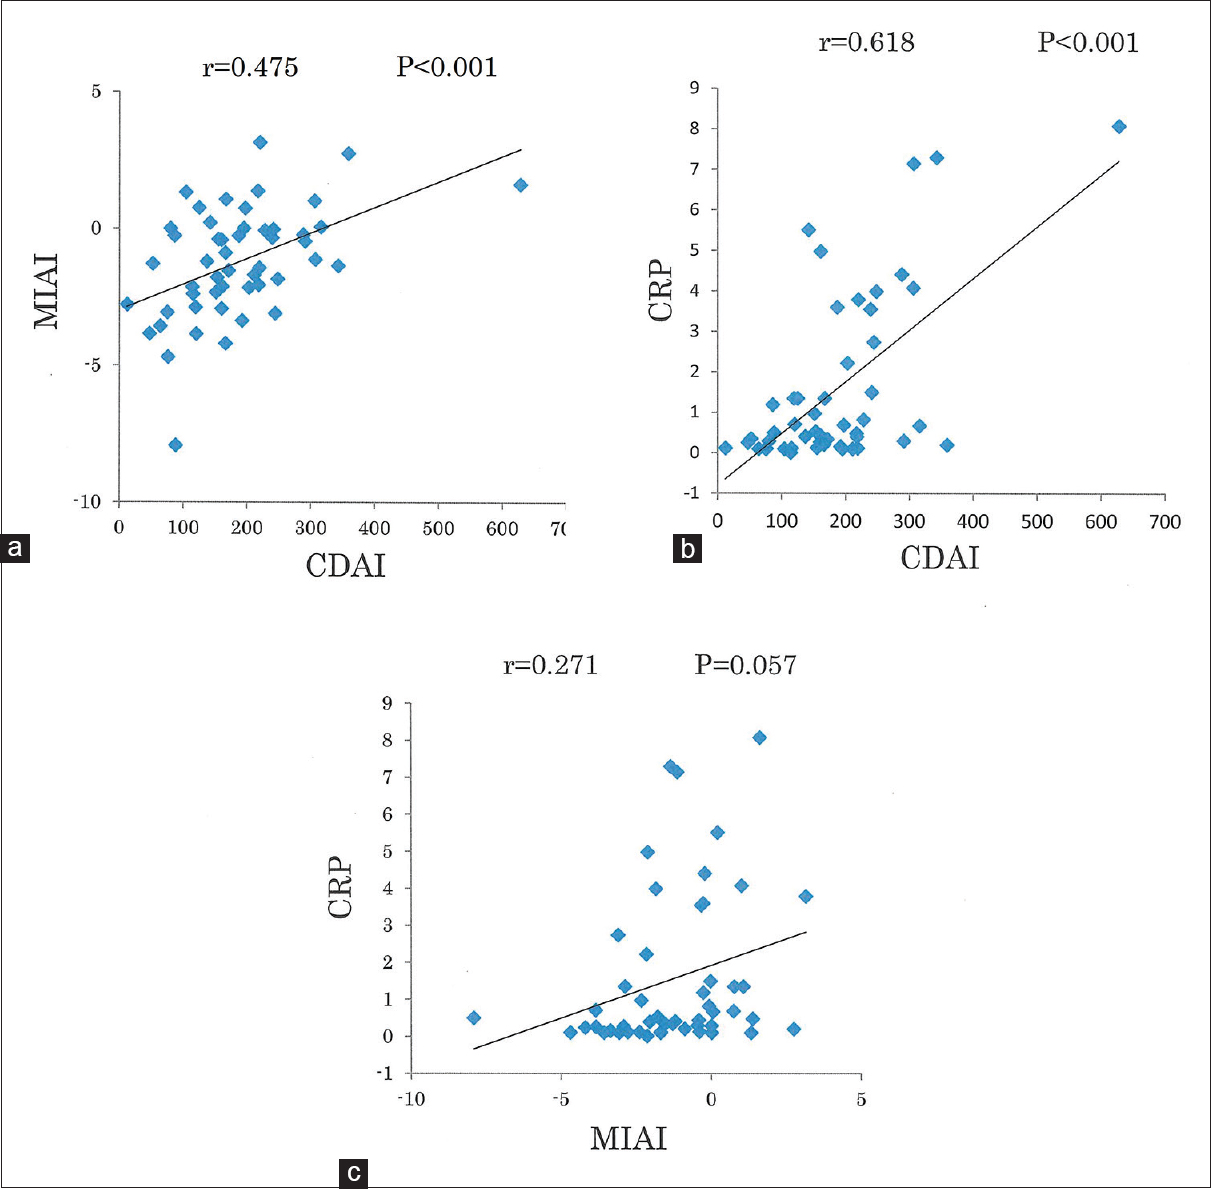 Figure 1: (a) Analysis of the correlation between the Crohn's disease activity index (CDAI) and multivariate index using AminoIndex™ (MIAI) technology in 25 patients before and after treatment (<i>n</i> = 50). (b) Analysis of the correlation between the CDAI and C-reactive protein (CRP) level in 25 patients before and after treatment (<i>n</i> = 50). (c) Analysis of the correlation between the MIAI and CRP level in 25 patients before and after treatment (<i>n</i> = 50)